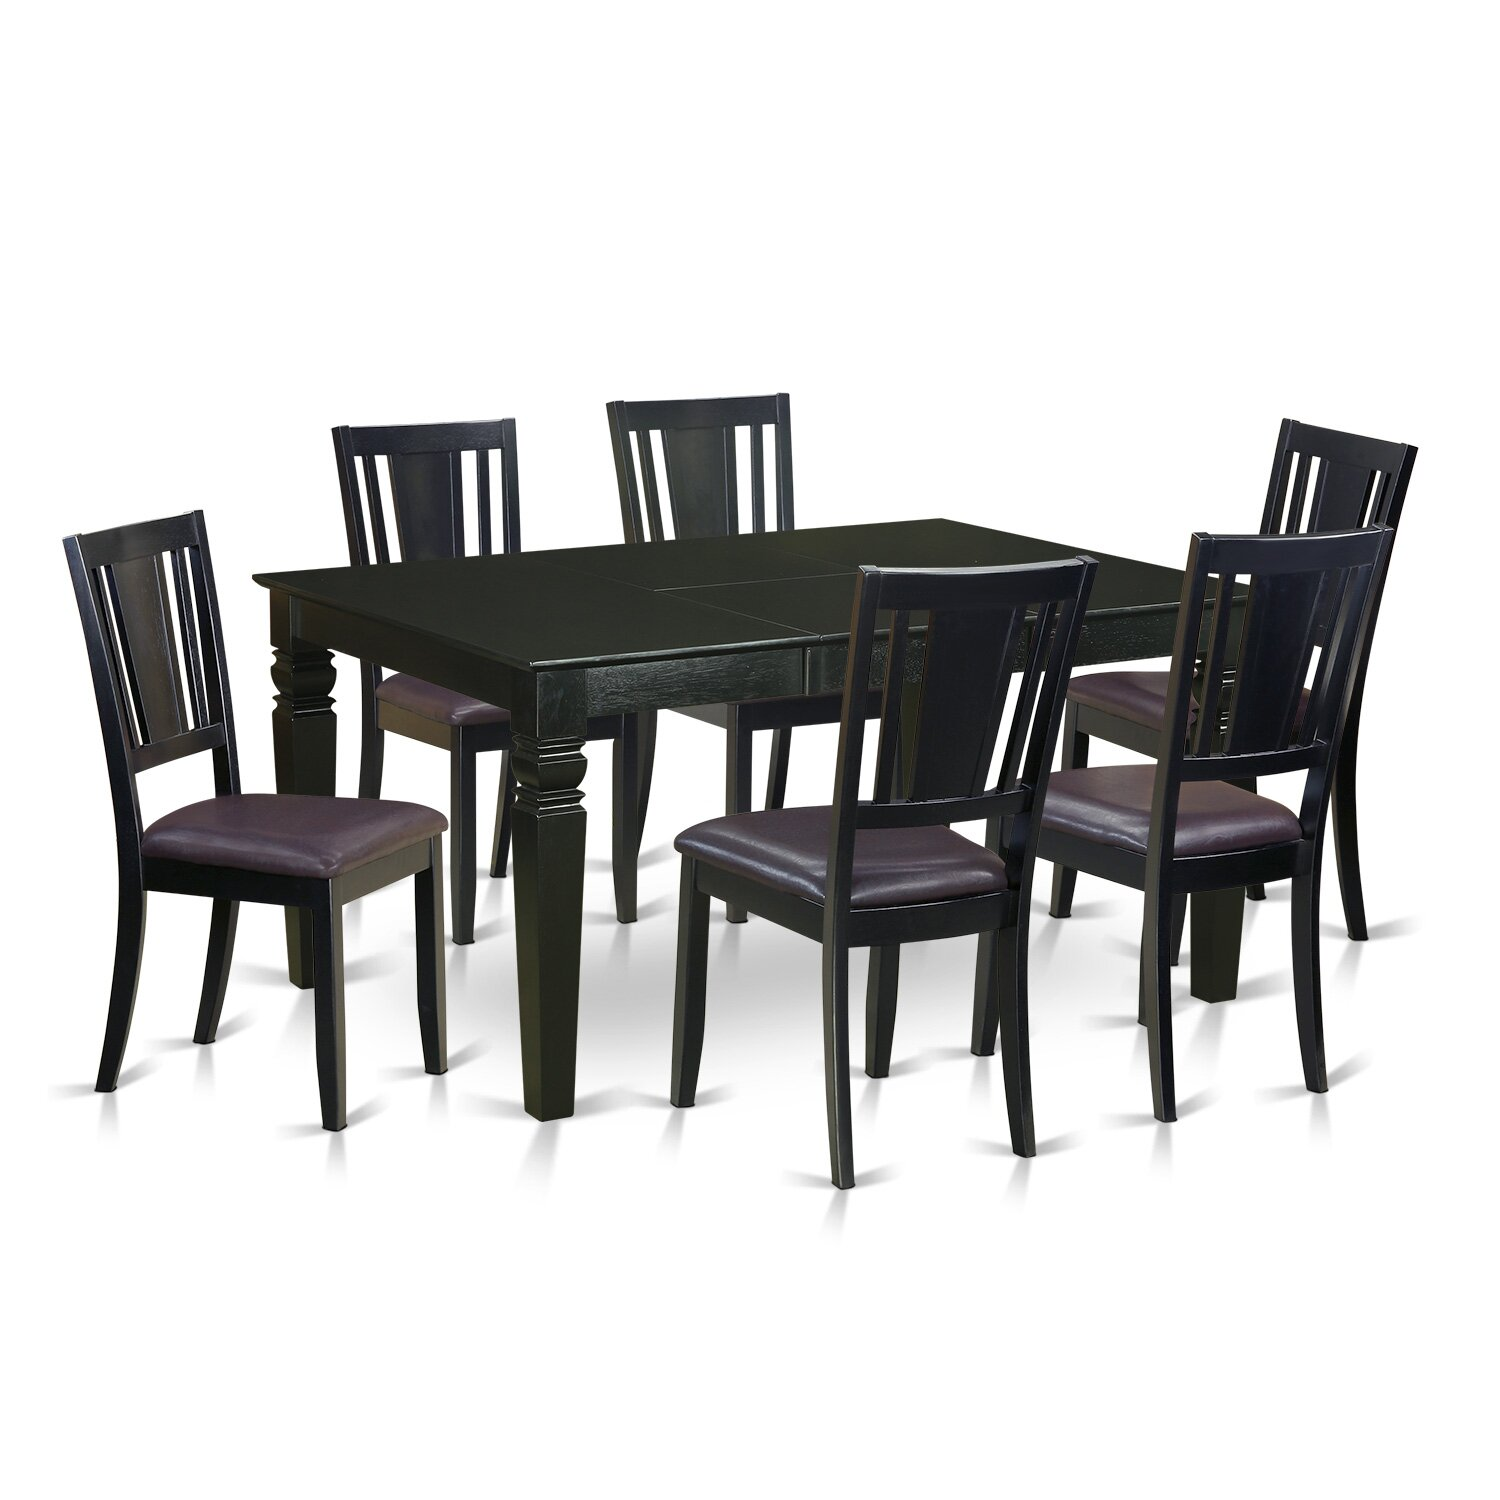 Wooden importers weston 7 piece dining set wayfair for Kitchen table set 6 chairs